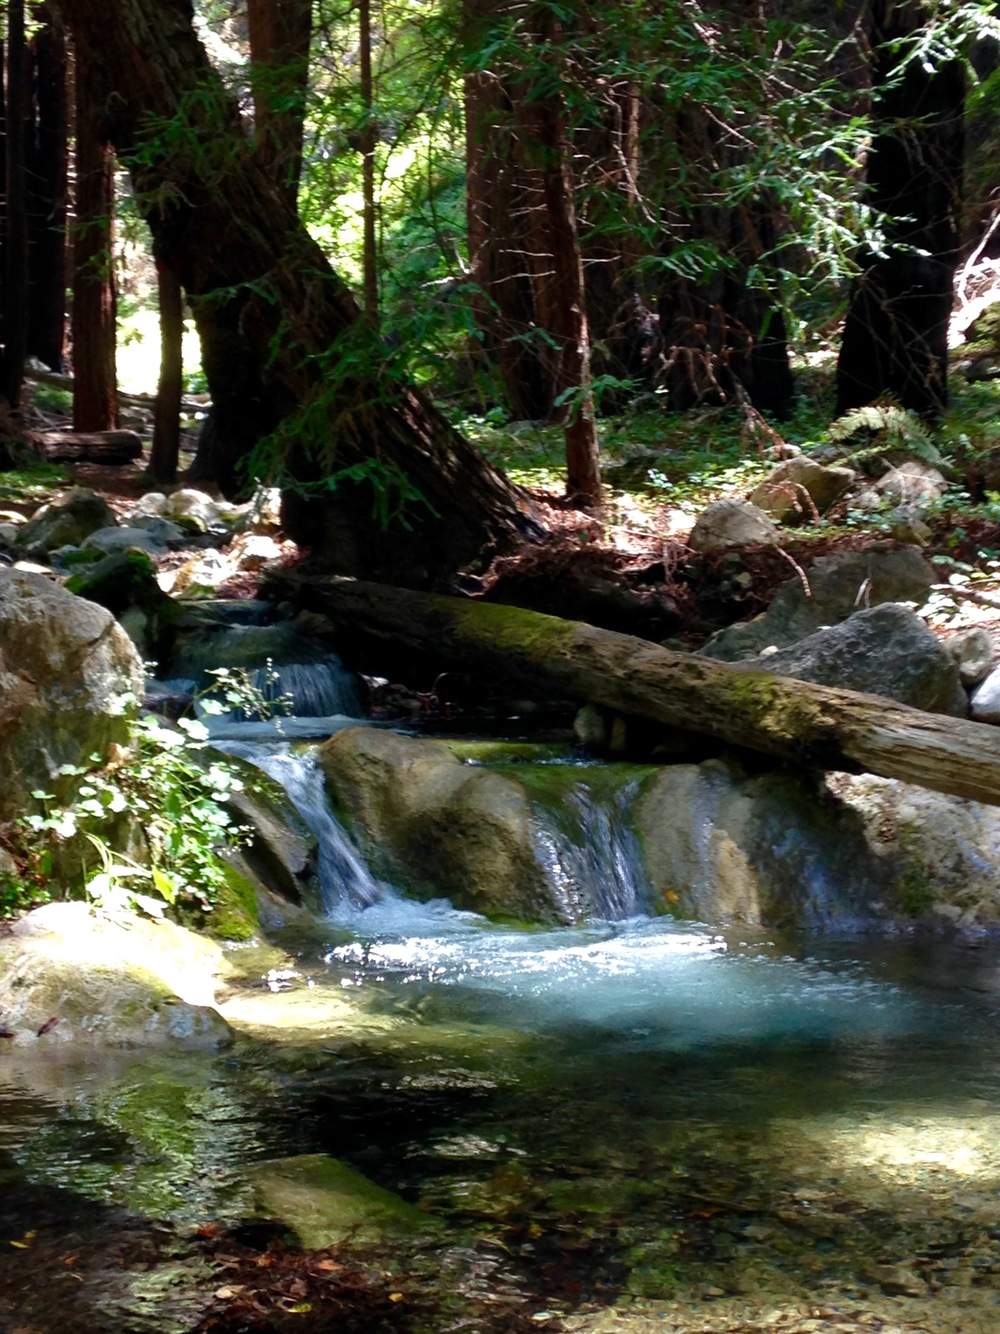 We camped at Lime Kiln State Park which had the loveliest little streams running through it!